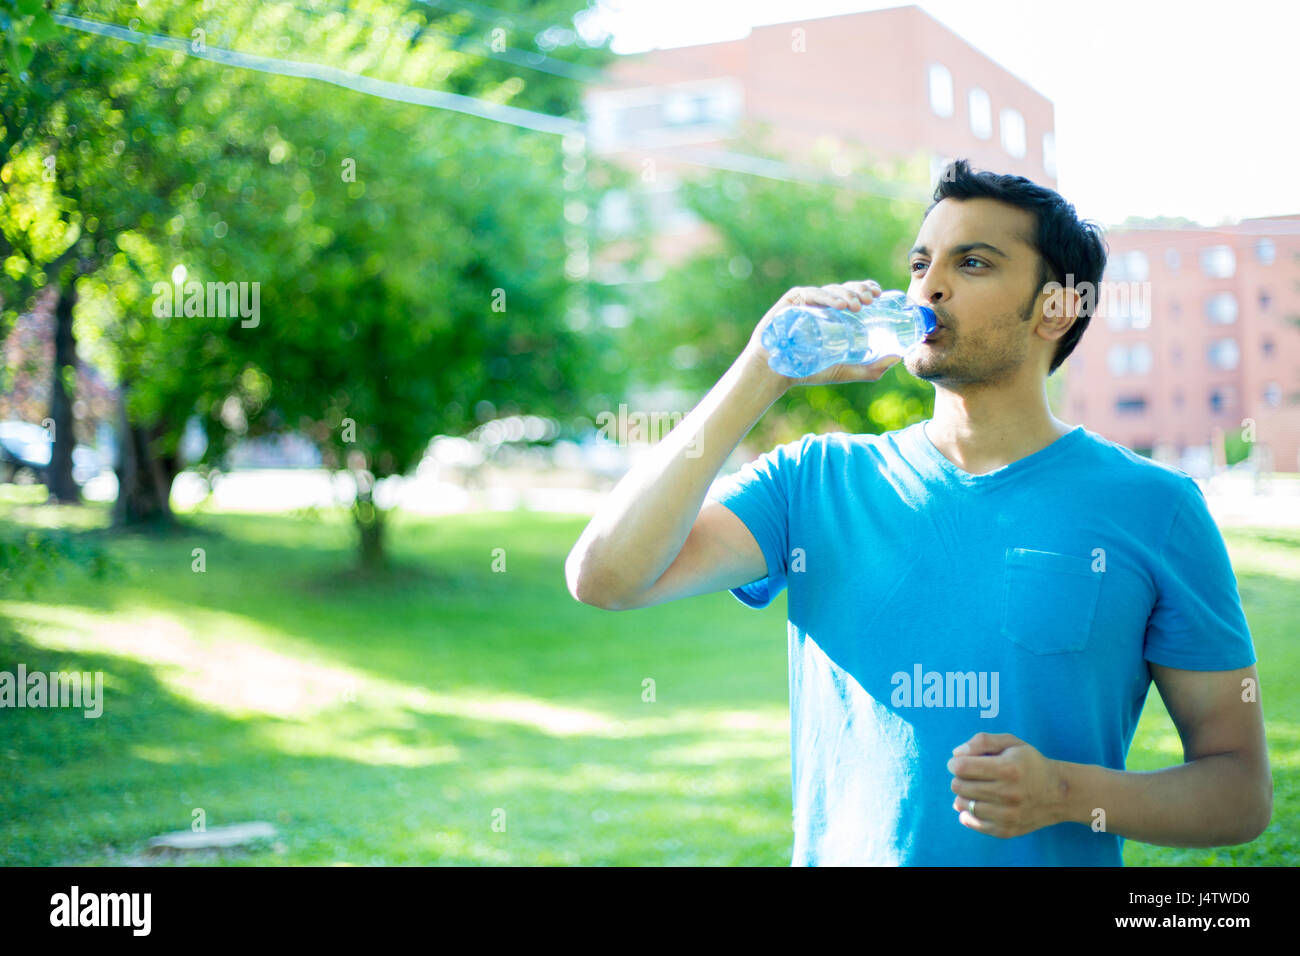 Closeup portrait of young guy in blue shirt drinking water from crystal clear bottle on a hot, sunny day, isolated - Stock Image